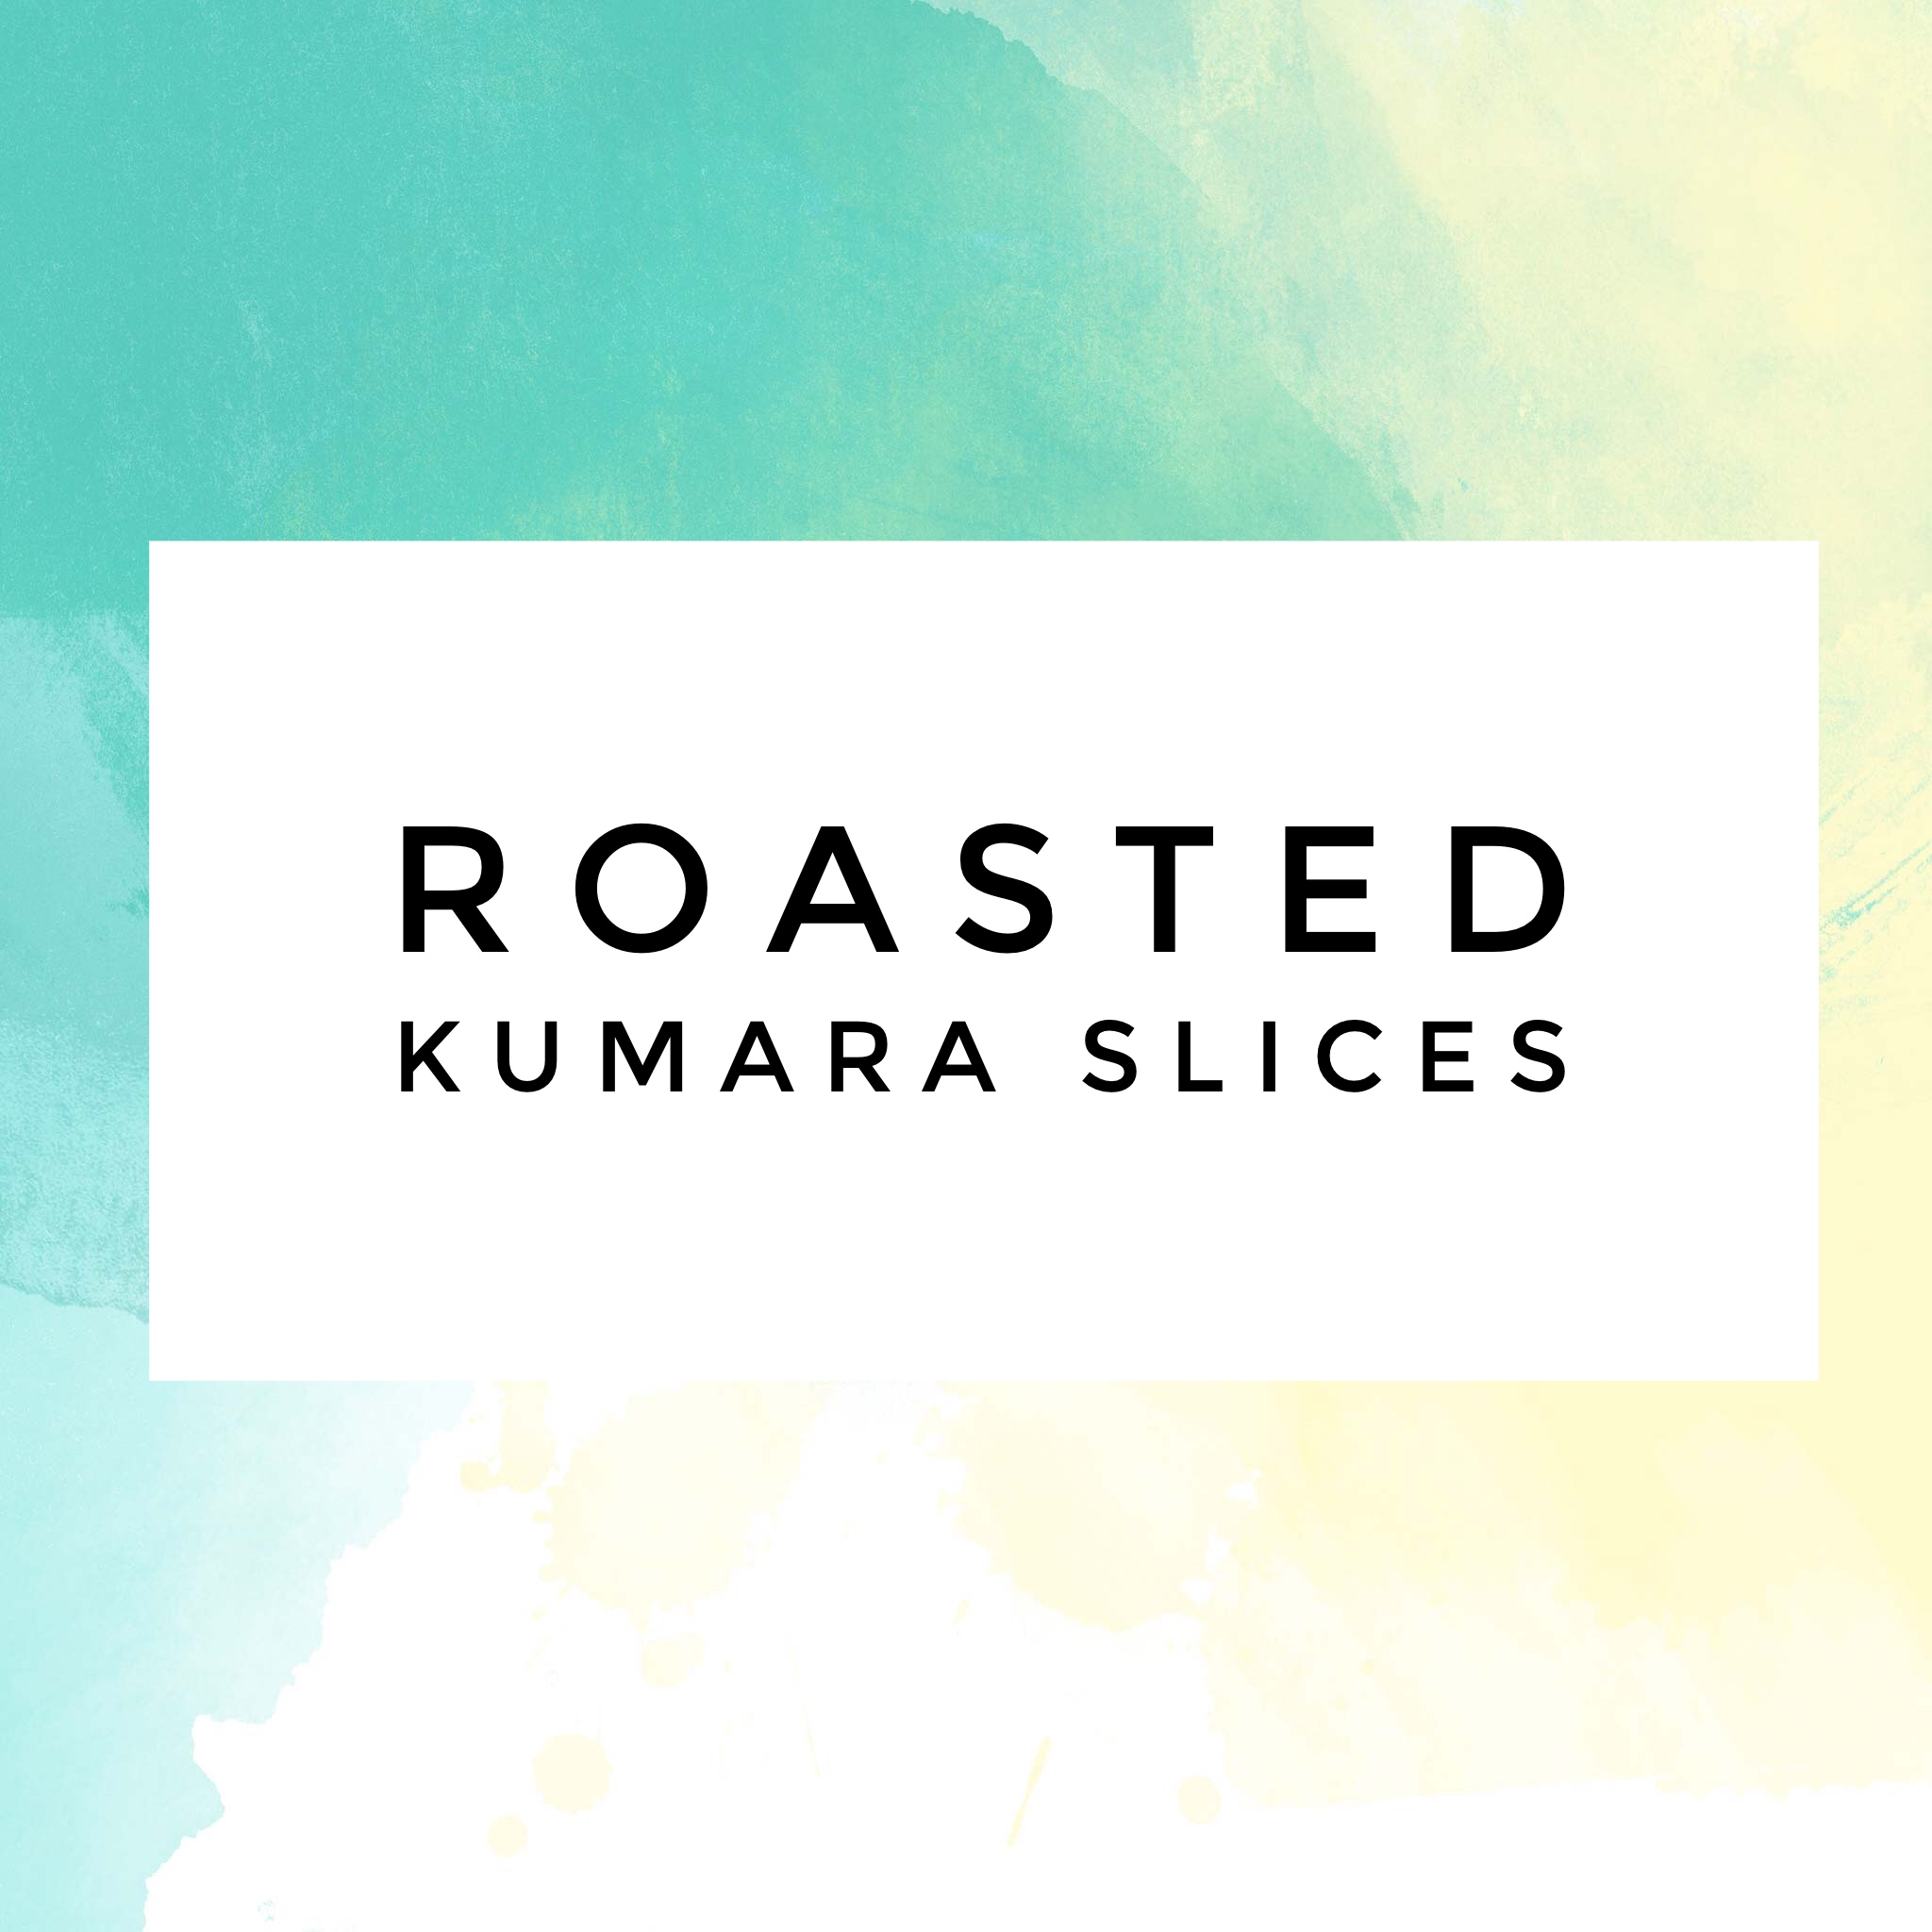 Roasted Kumara Slices